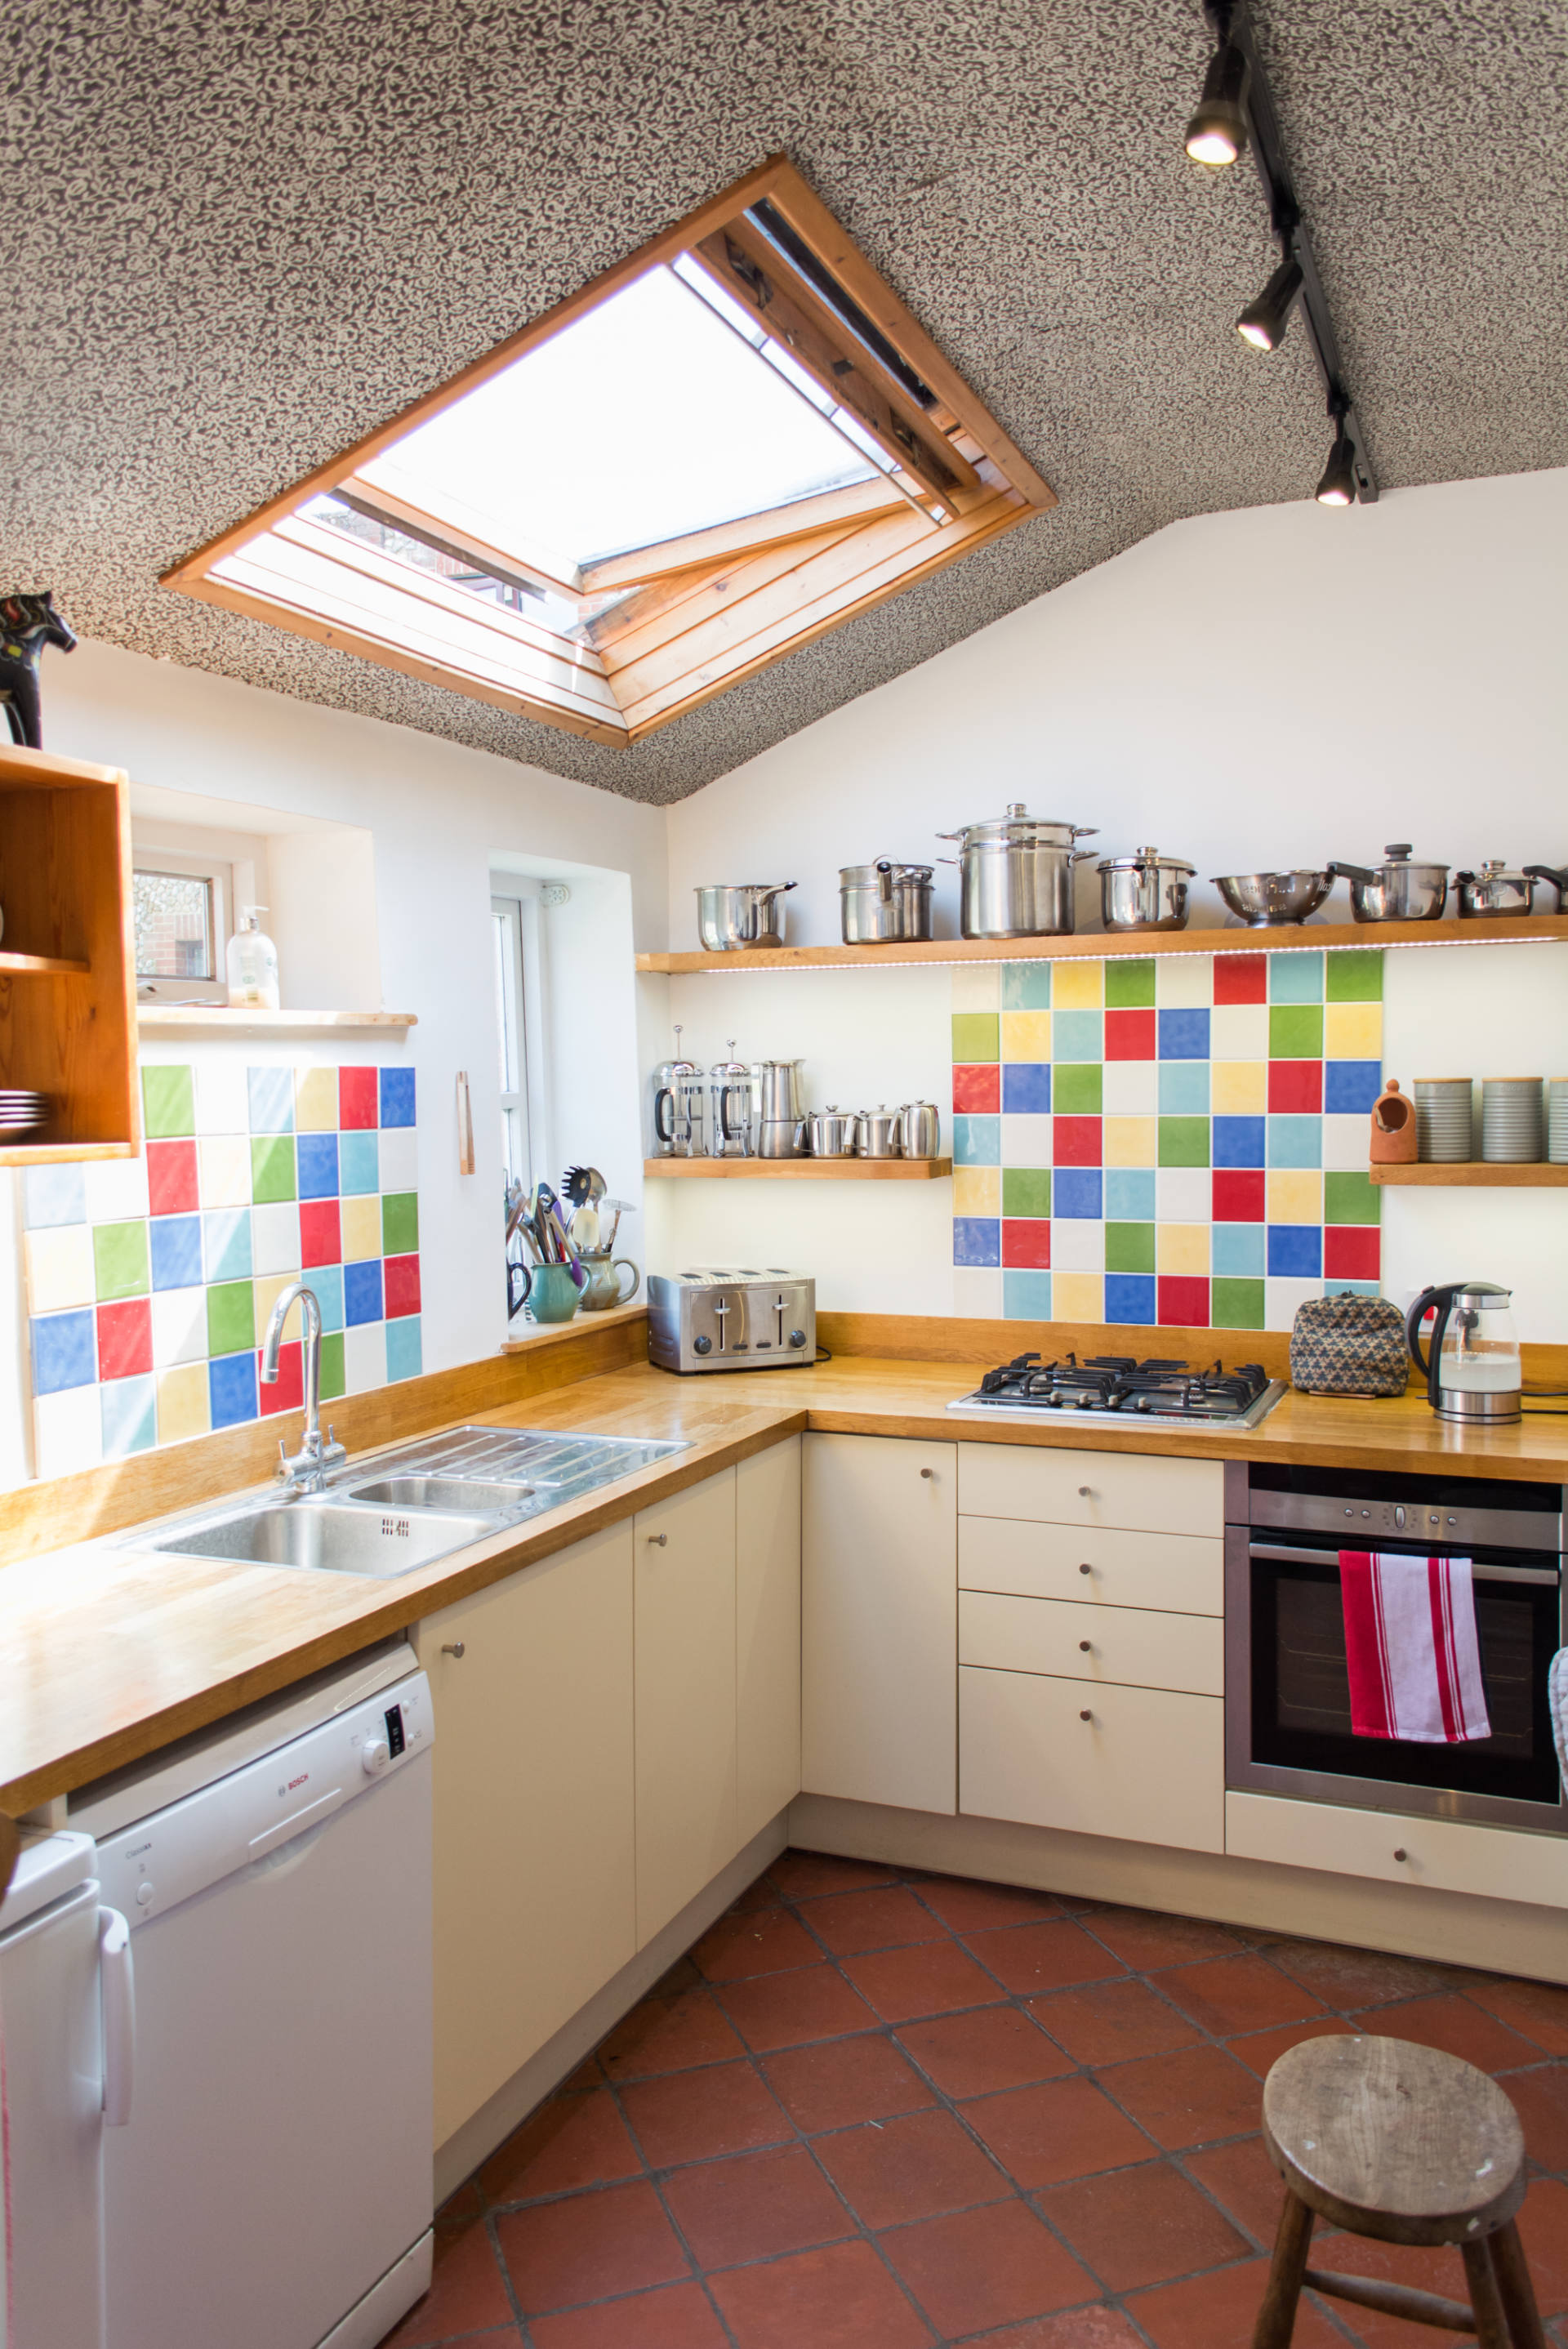 North Norfolk family holiday cottage kitchen.